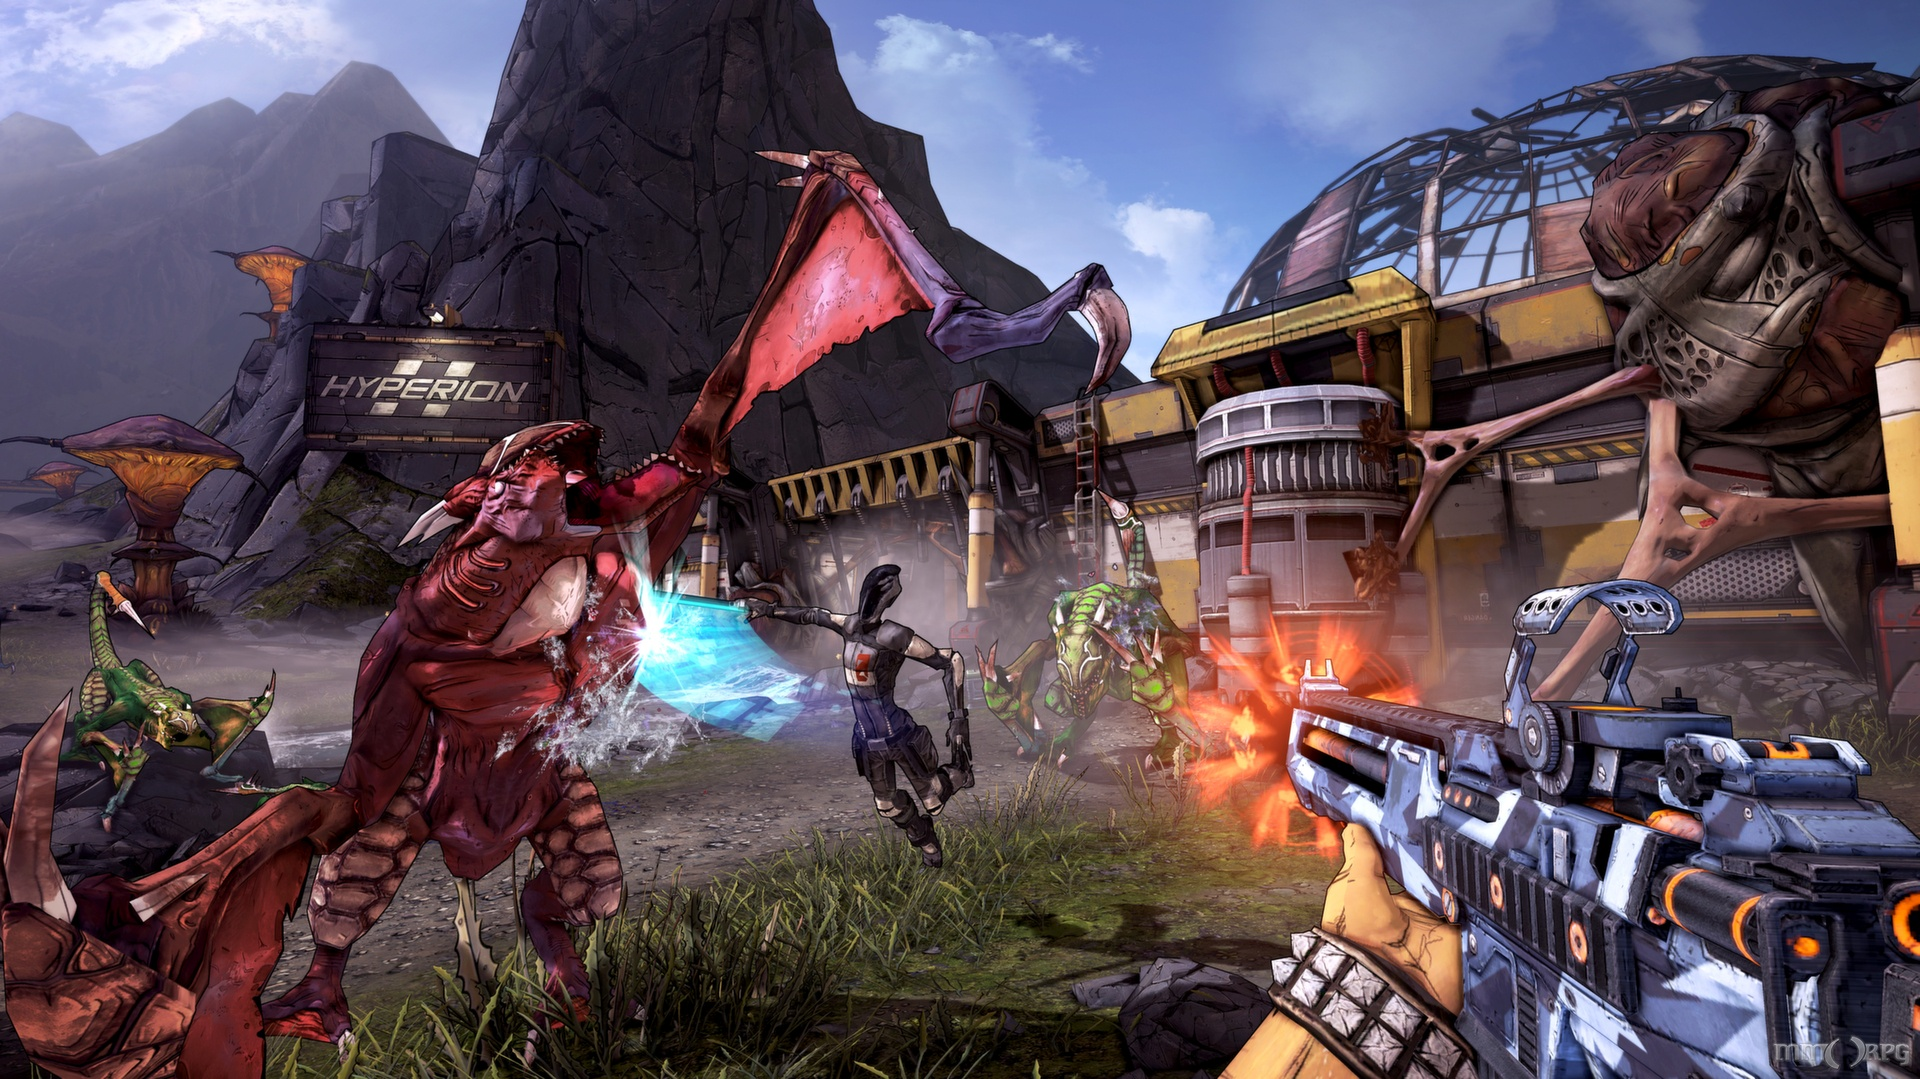 Borderlands 2 features a similarly twisted sense of humor and sharp writing alongside action-RPG gameplay.